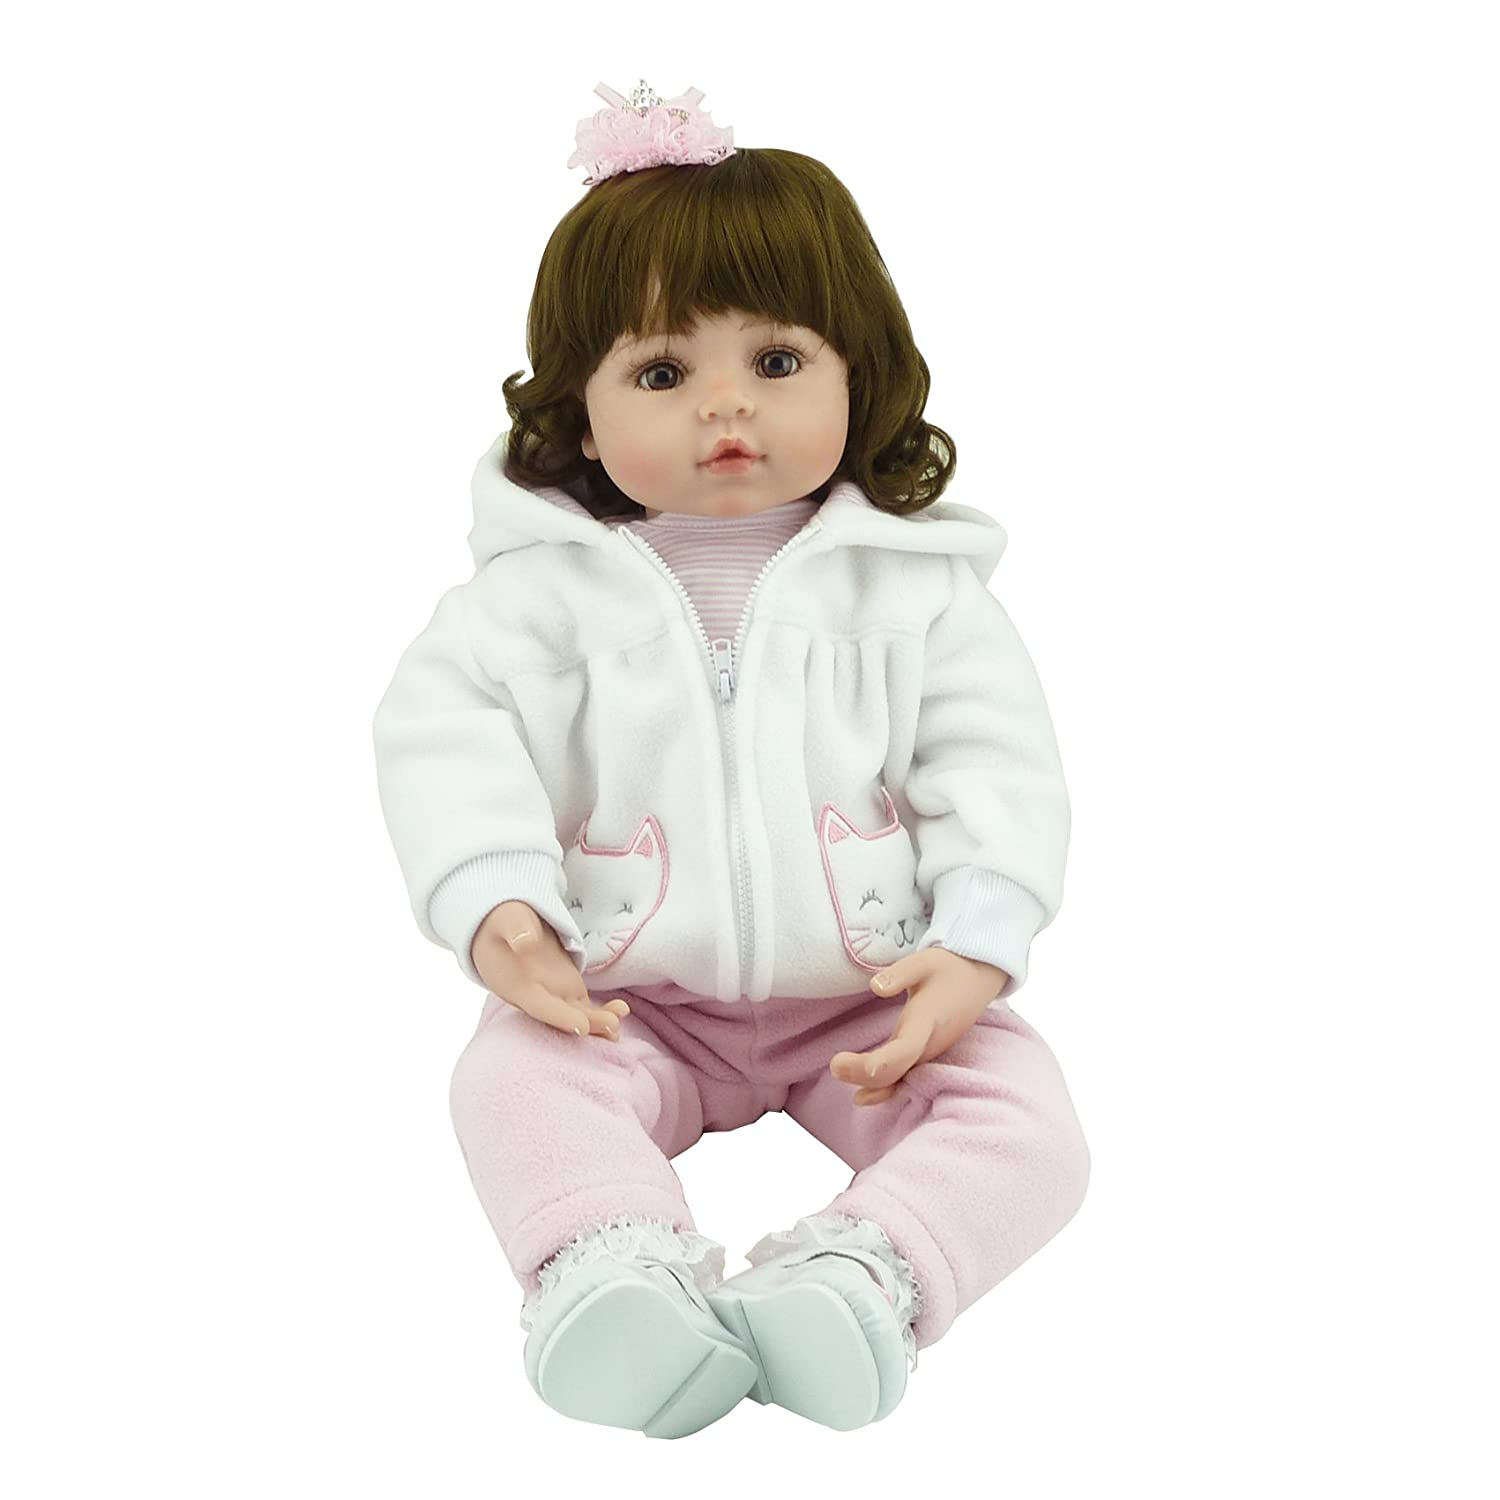 Baby Reborn Dolls Silicone Life like Real Toddler Handmade For 24inch Christmas